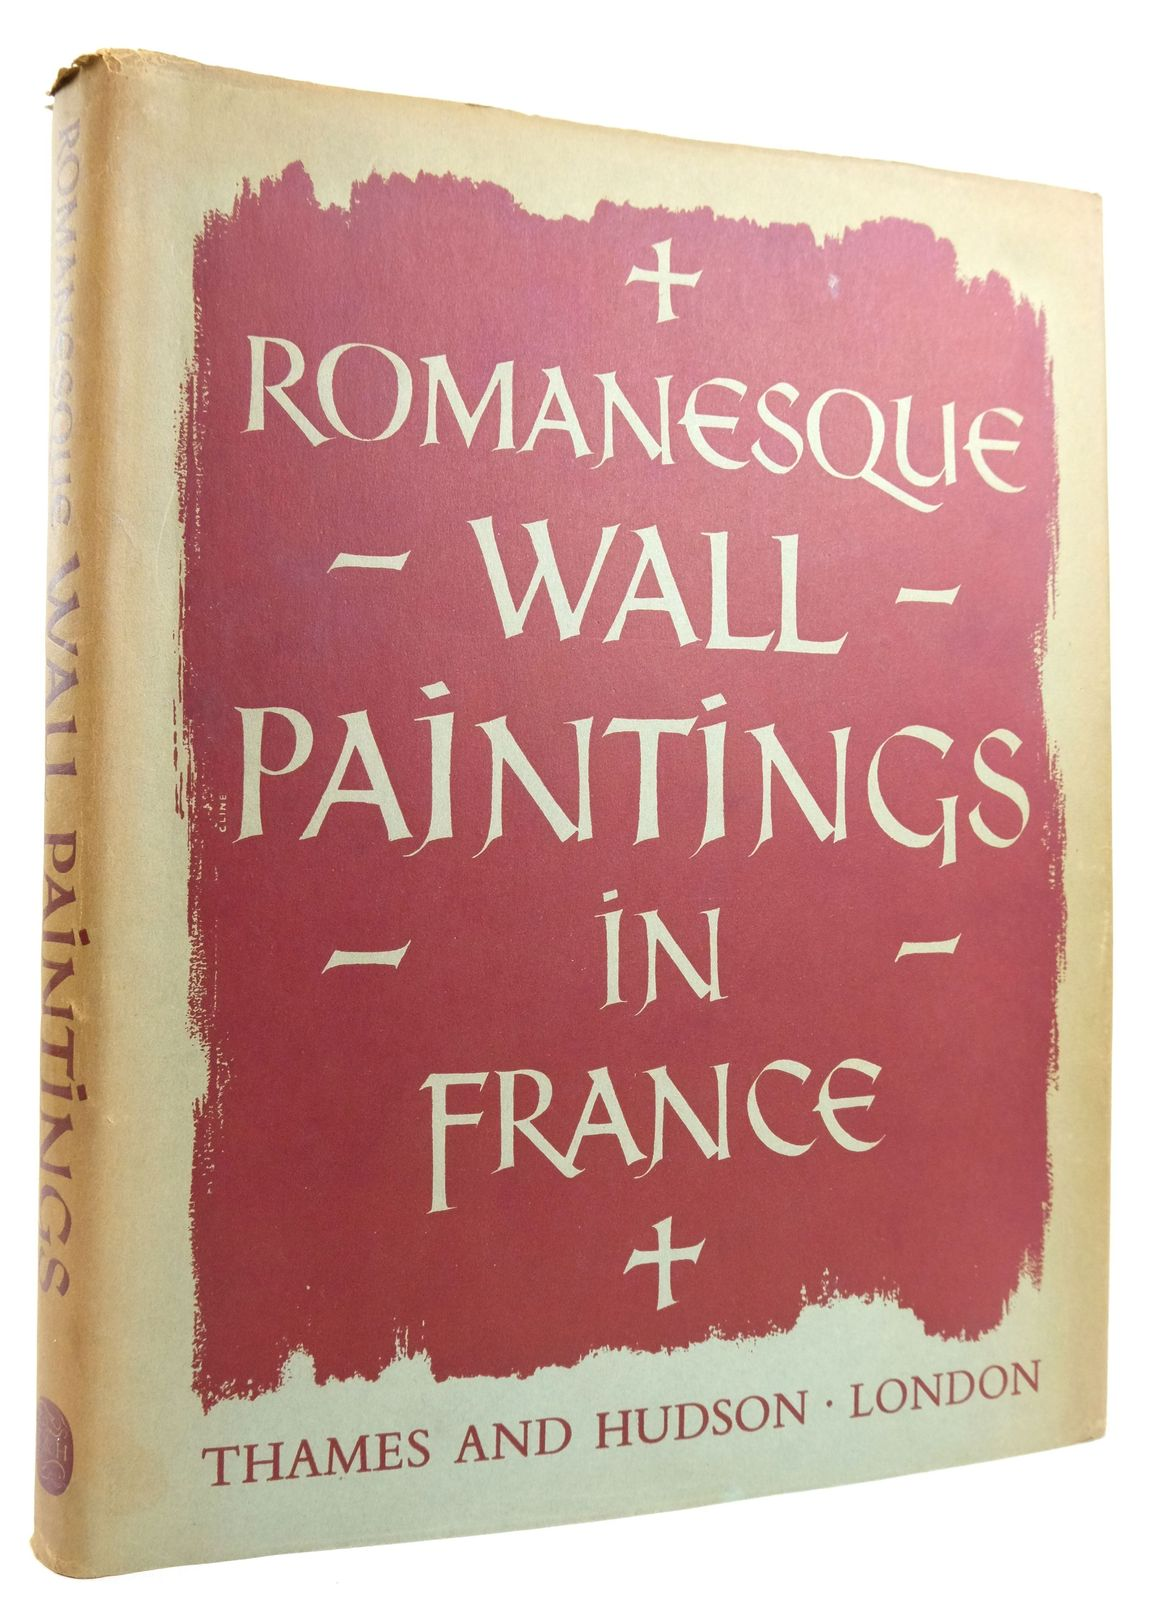 Photo of ROMANESQUE WALL PAINTINGS IN FRANCE written by Michel, Paul-Henri Evans, Joan published by Thames and Hudson (STOCK CODE: 1819859)  for sale by Stella & Rose's Books